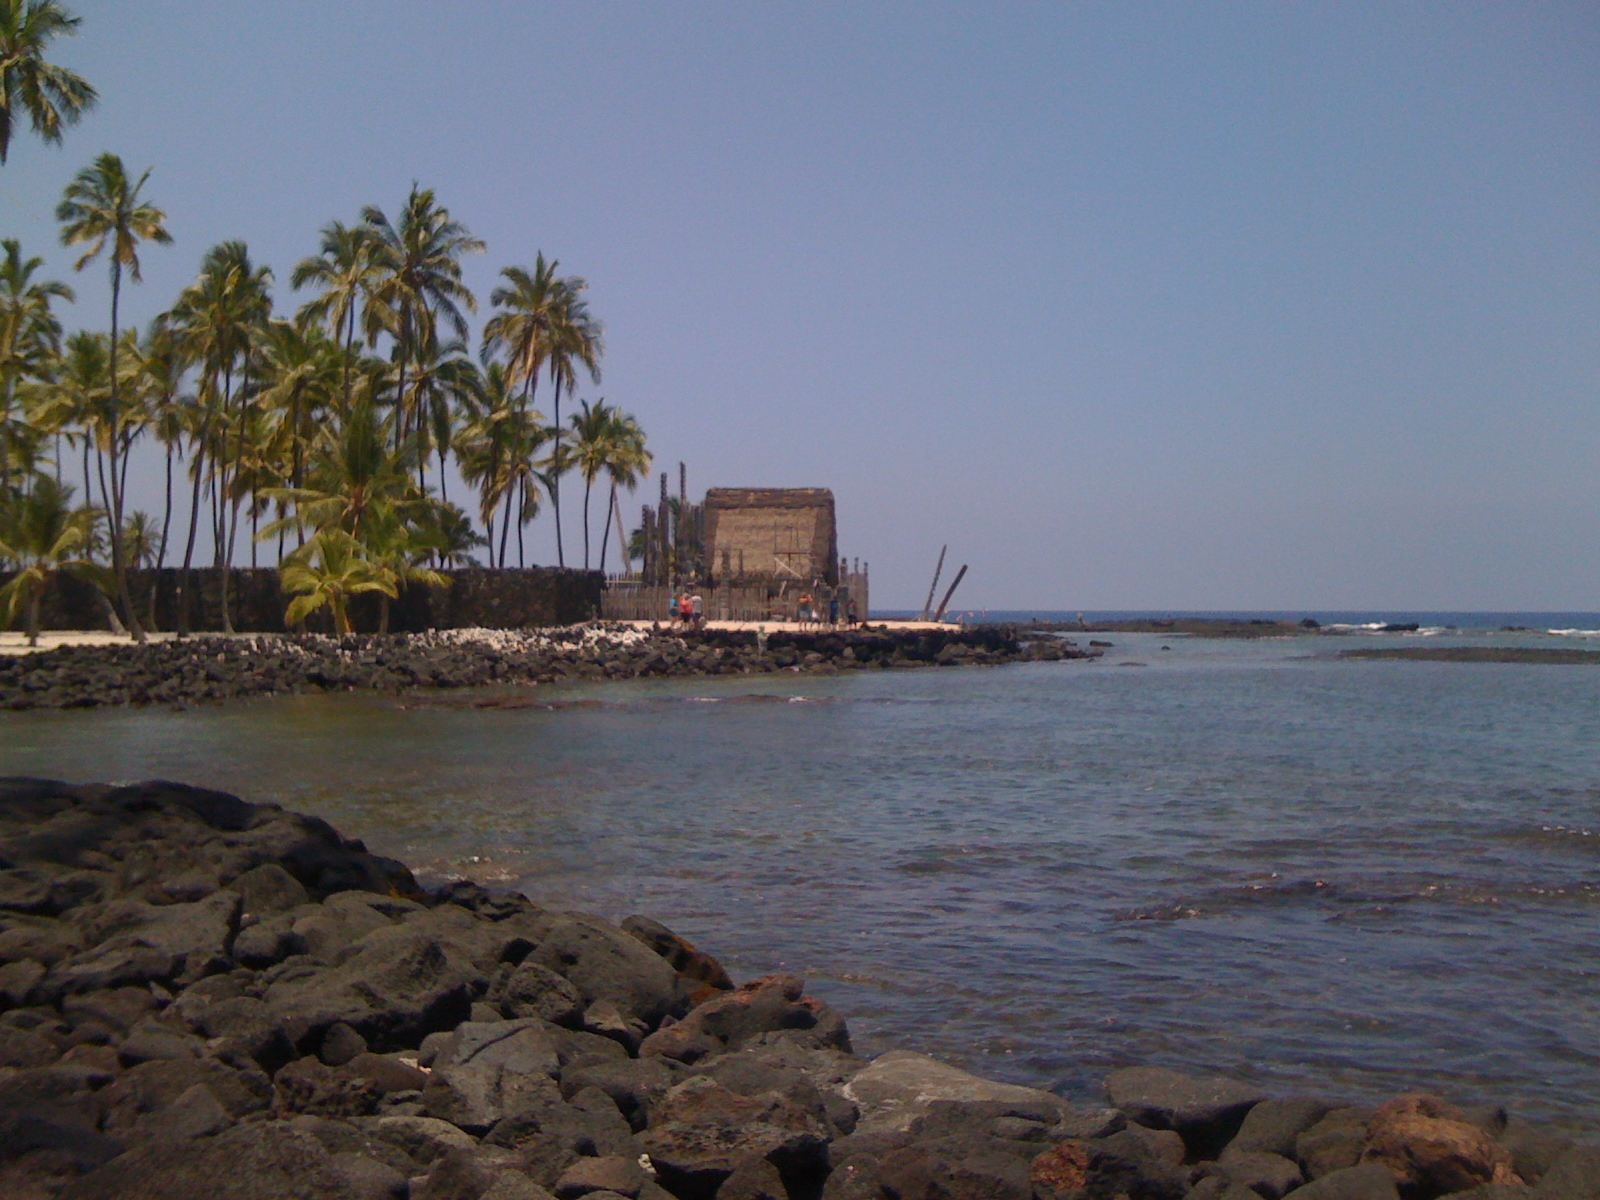 My little grass shack, Pu'uhonua